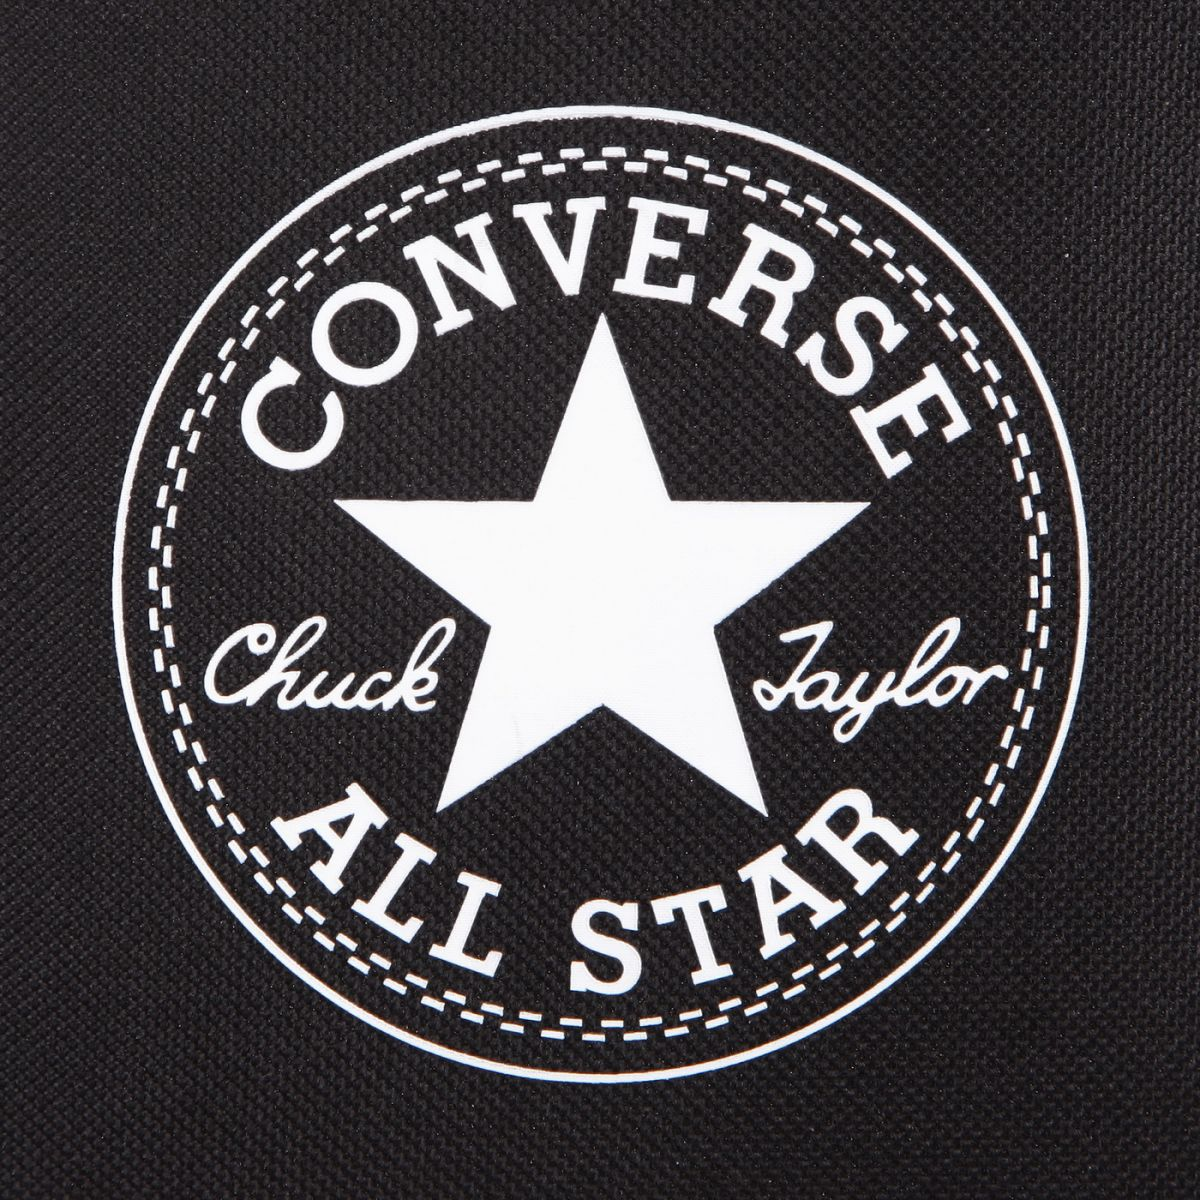 converse all star logo wwwimgkidcom the image kid